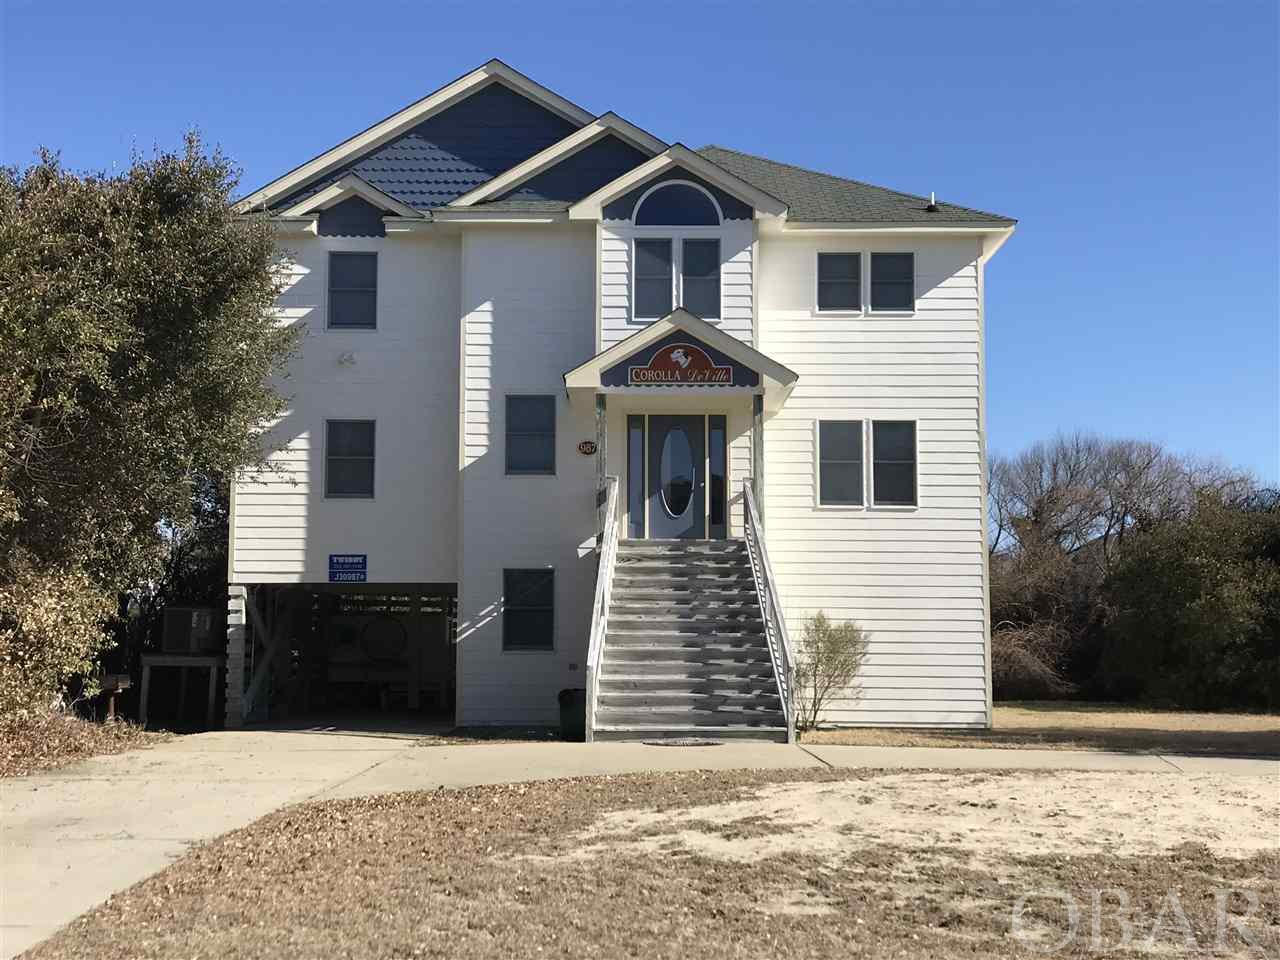 987 Whalehead Drive, Corolla, NC 27927, 6 Bedrooms Bedrooms, ,5 BathroomsBathrooms,Residential,For sale,Whalehead Drive,99025